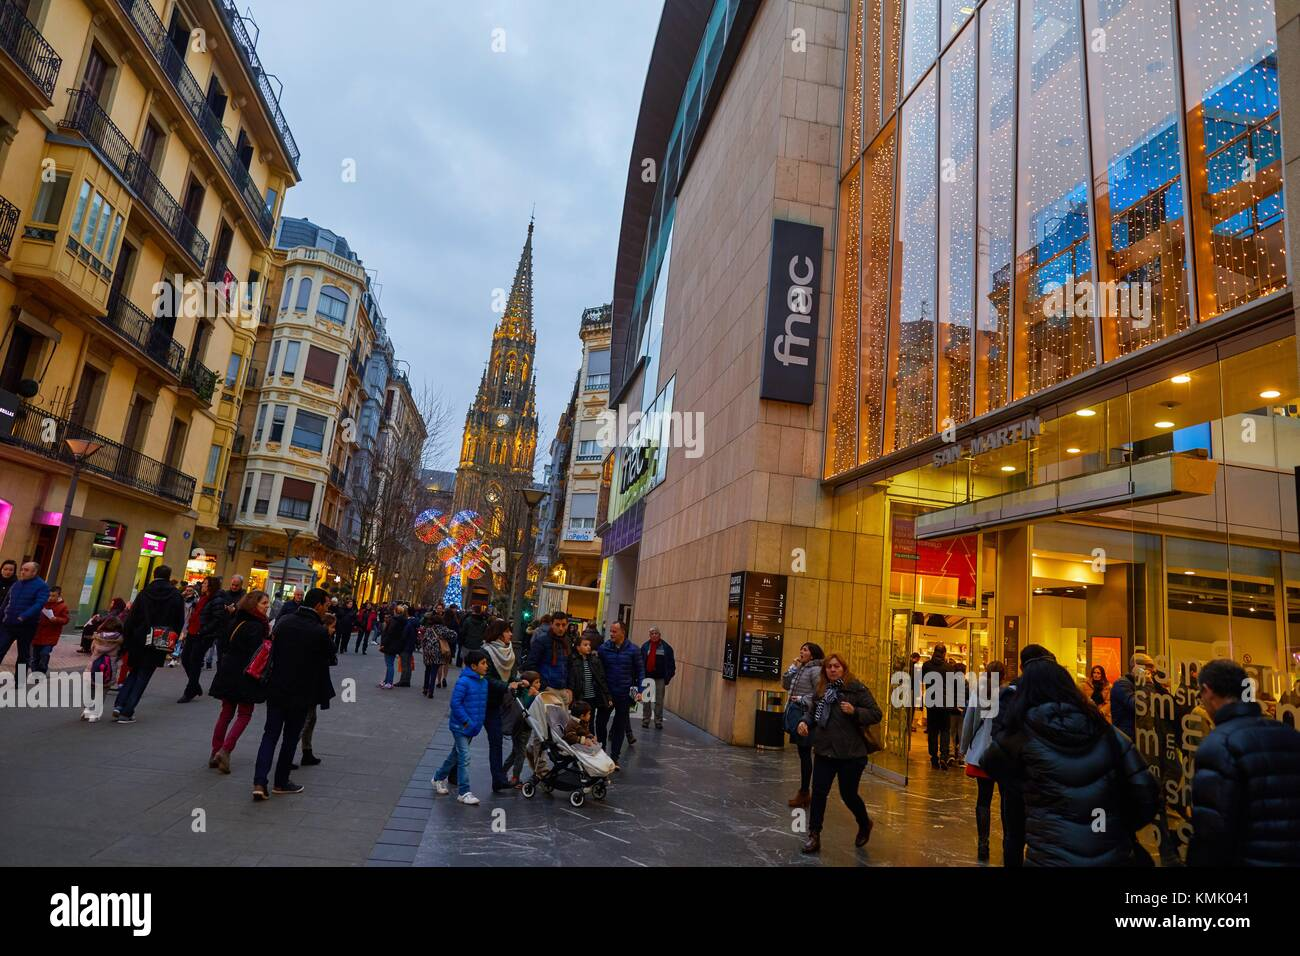 San Martin mall, Christmas, Buen Pastor Cathedral, Donostia, San Sebastian, Gipuzkoa, Basque Country, Spain, Europe - Stock Image